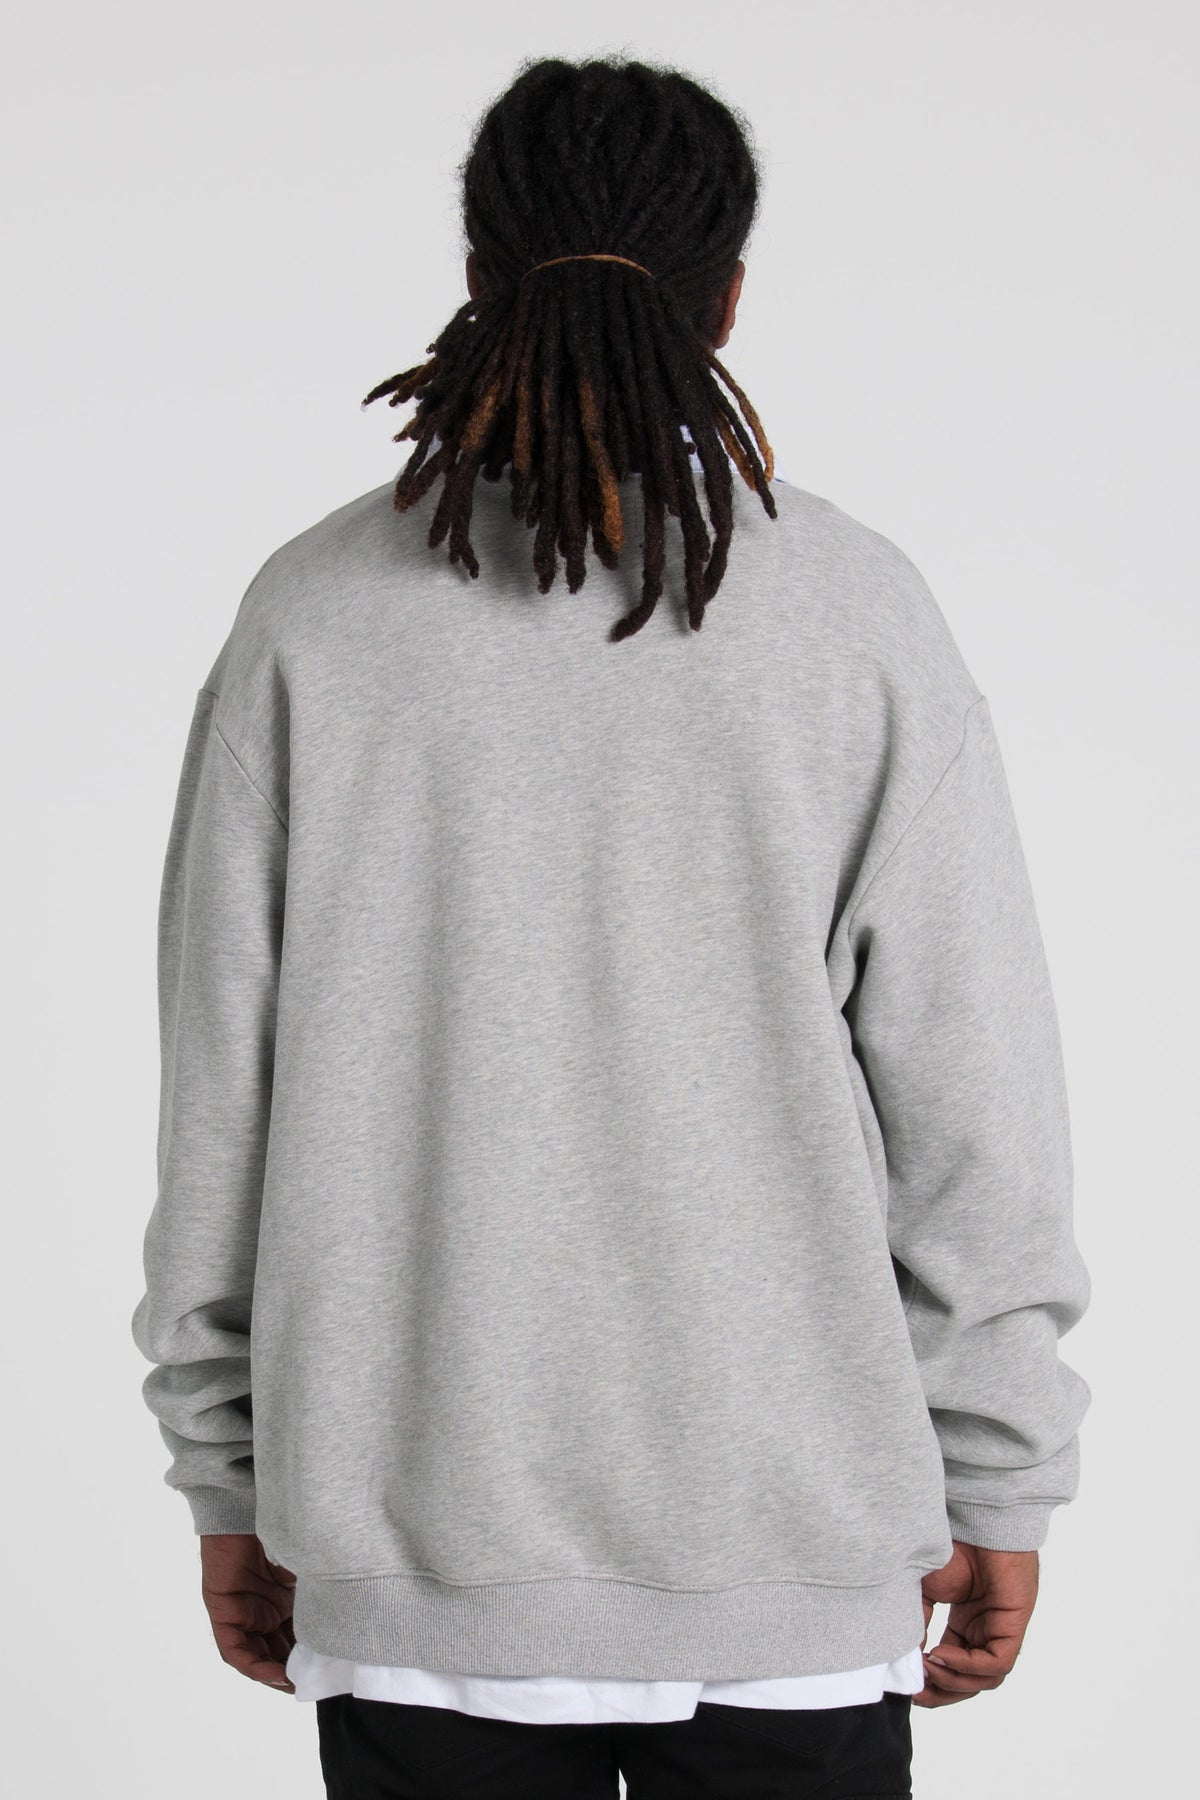 Sine Club Jersey - Grey Marle